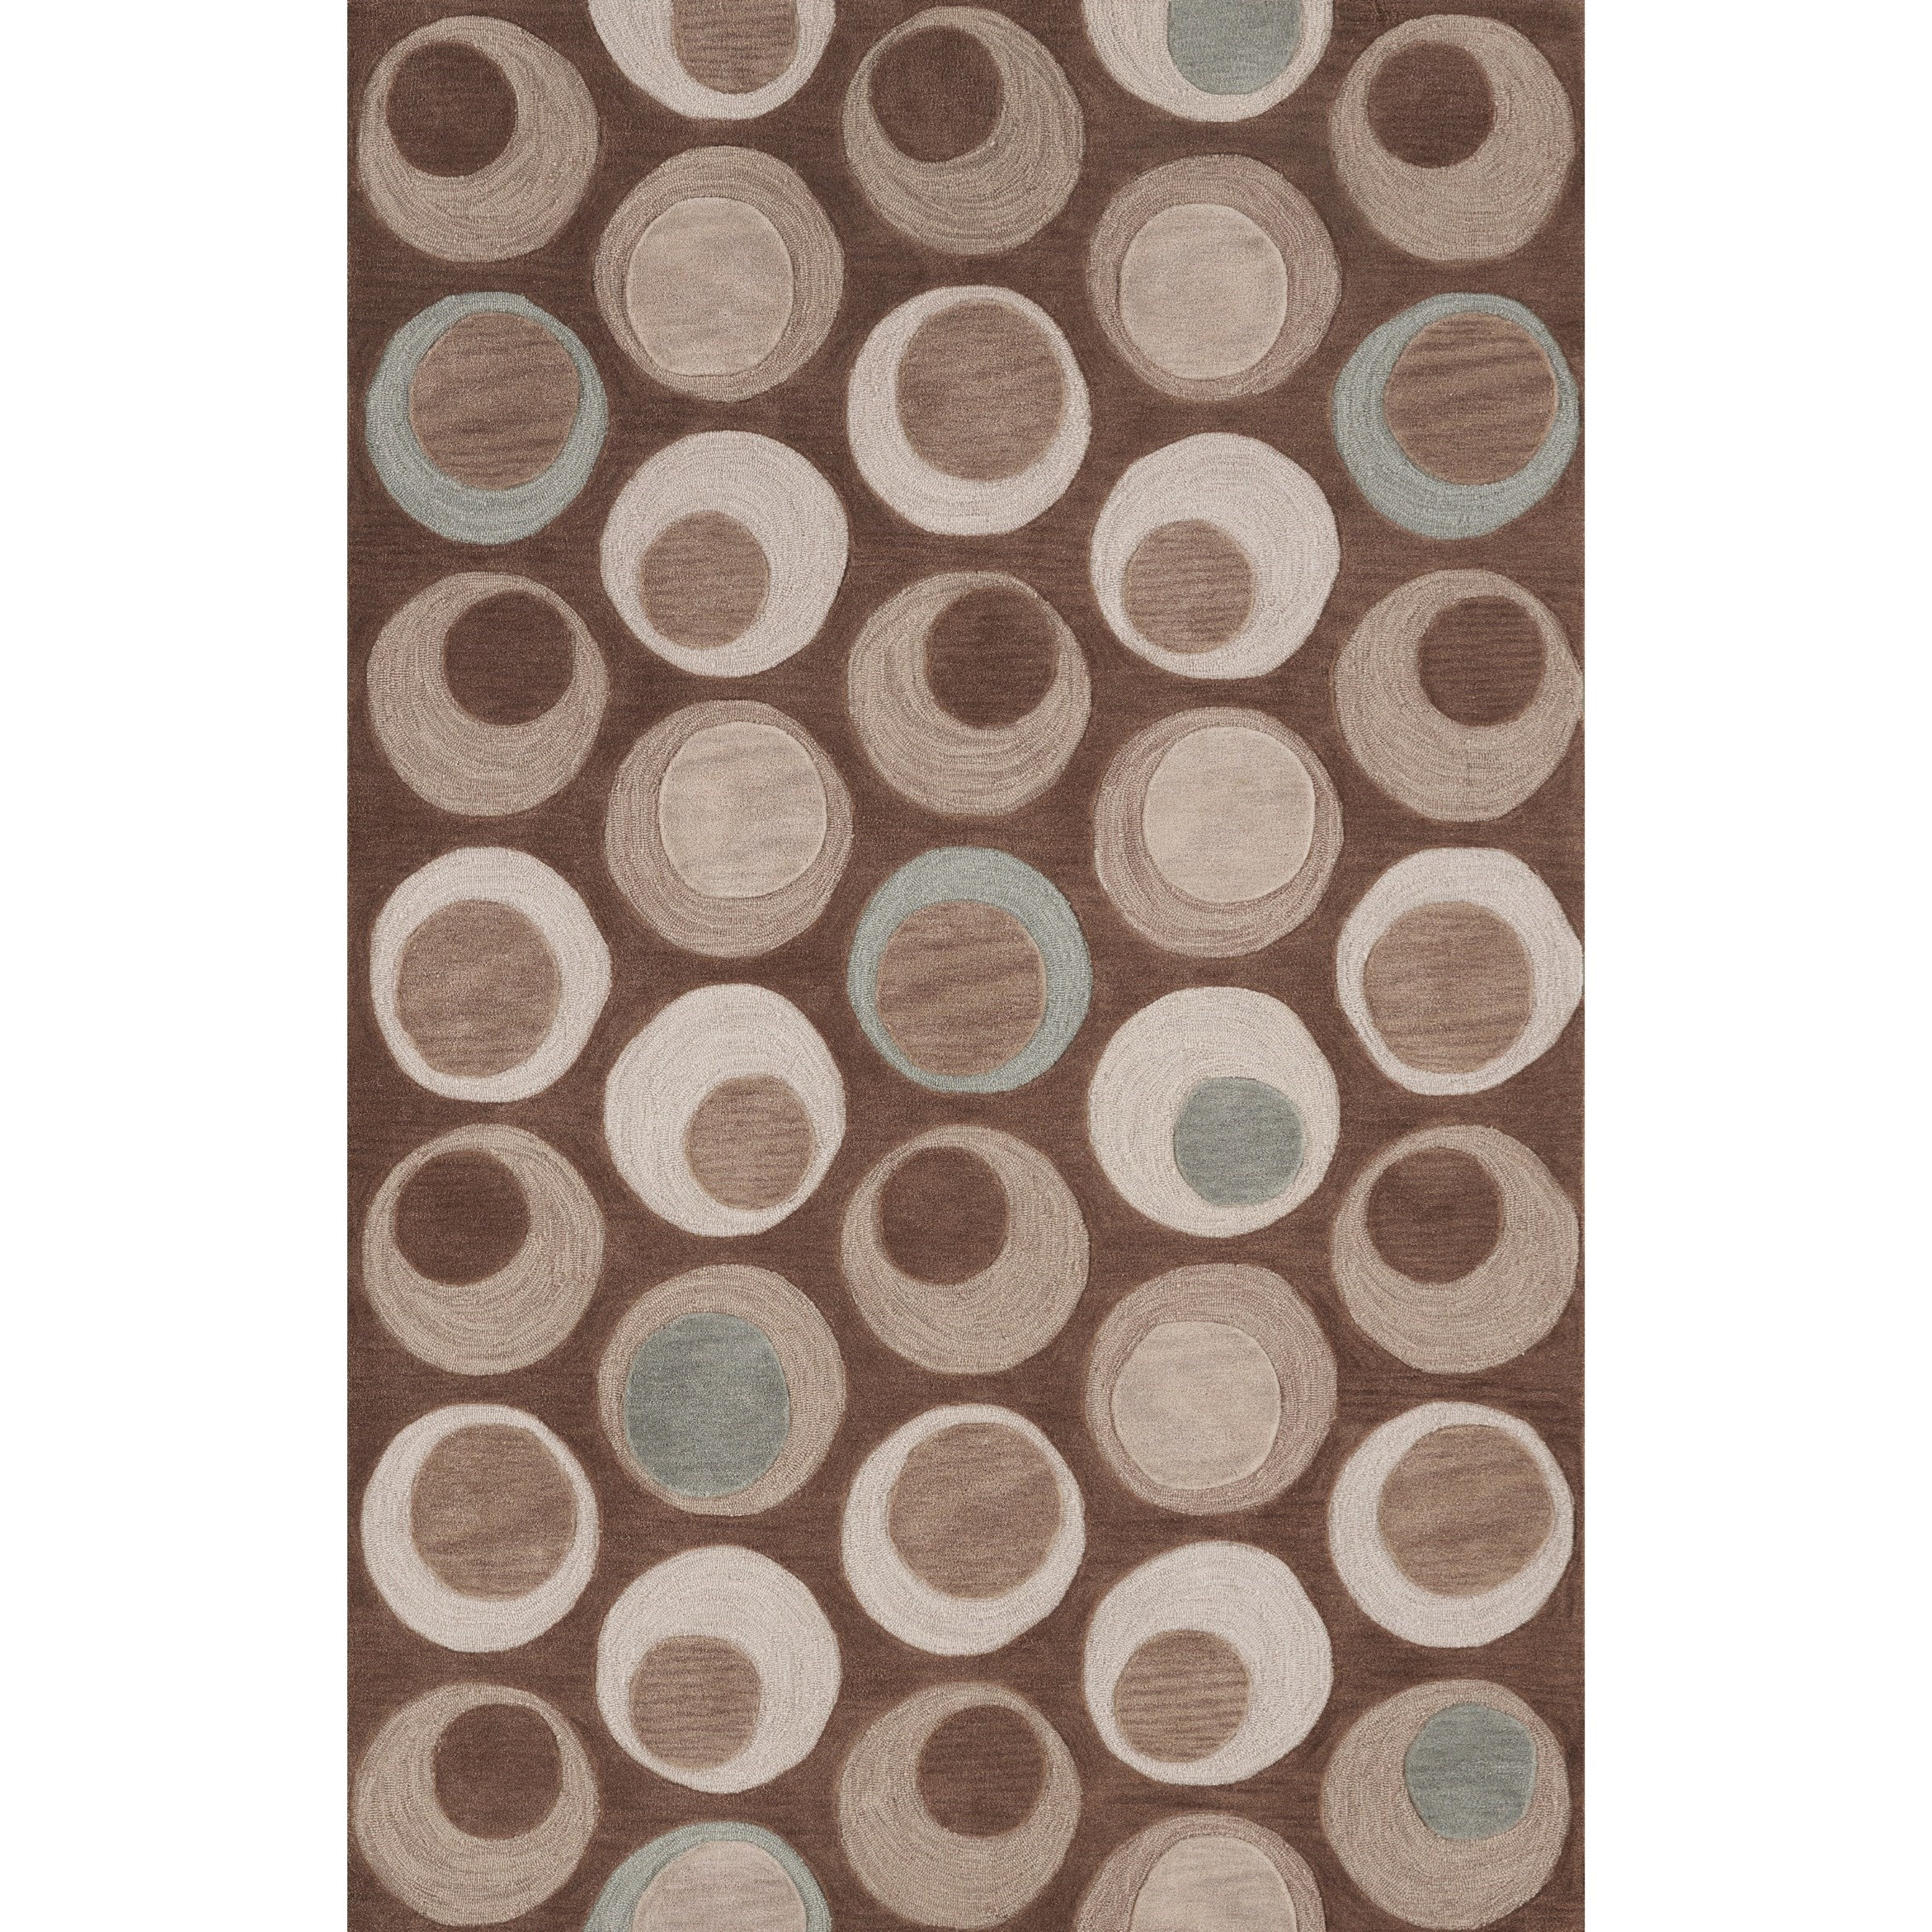 Studio Taupe 8'X10' Rug by Dalyn at Sadler's Home Furnishings